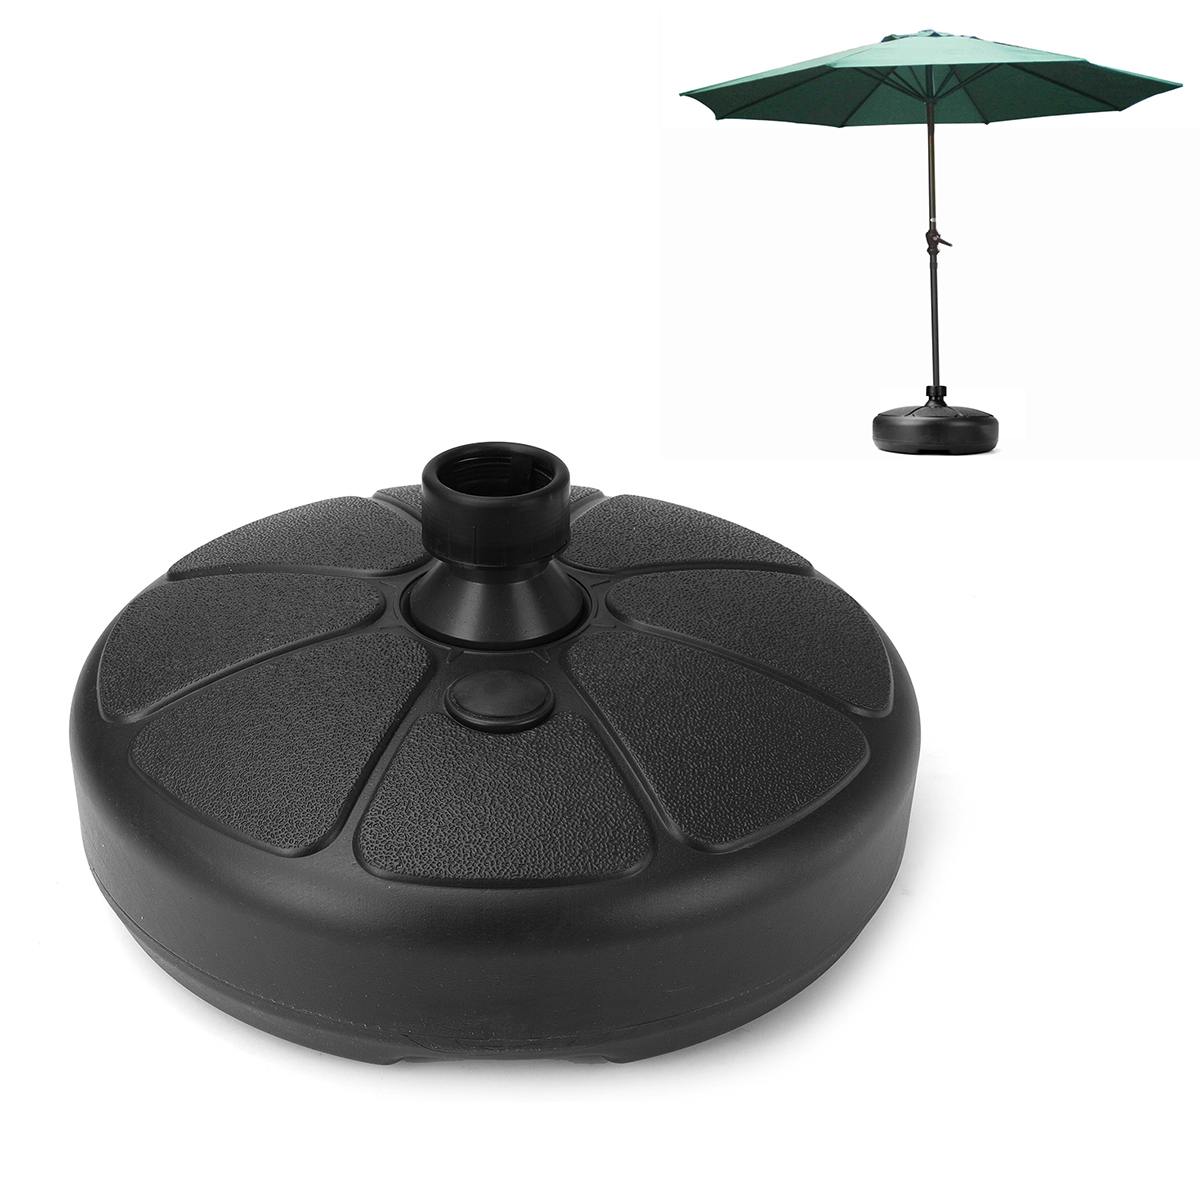 Other Camping Outdoors Ipree 38mm Outdoor Garden Beach Umbrella